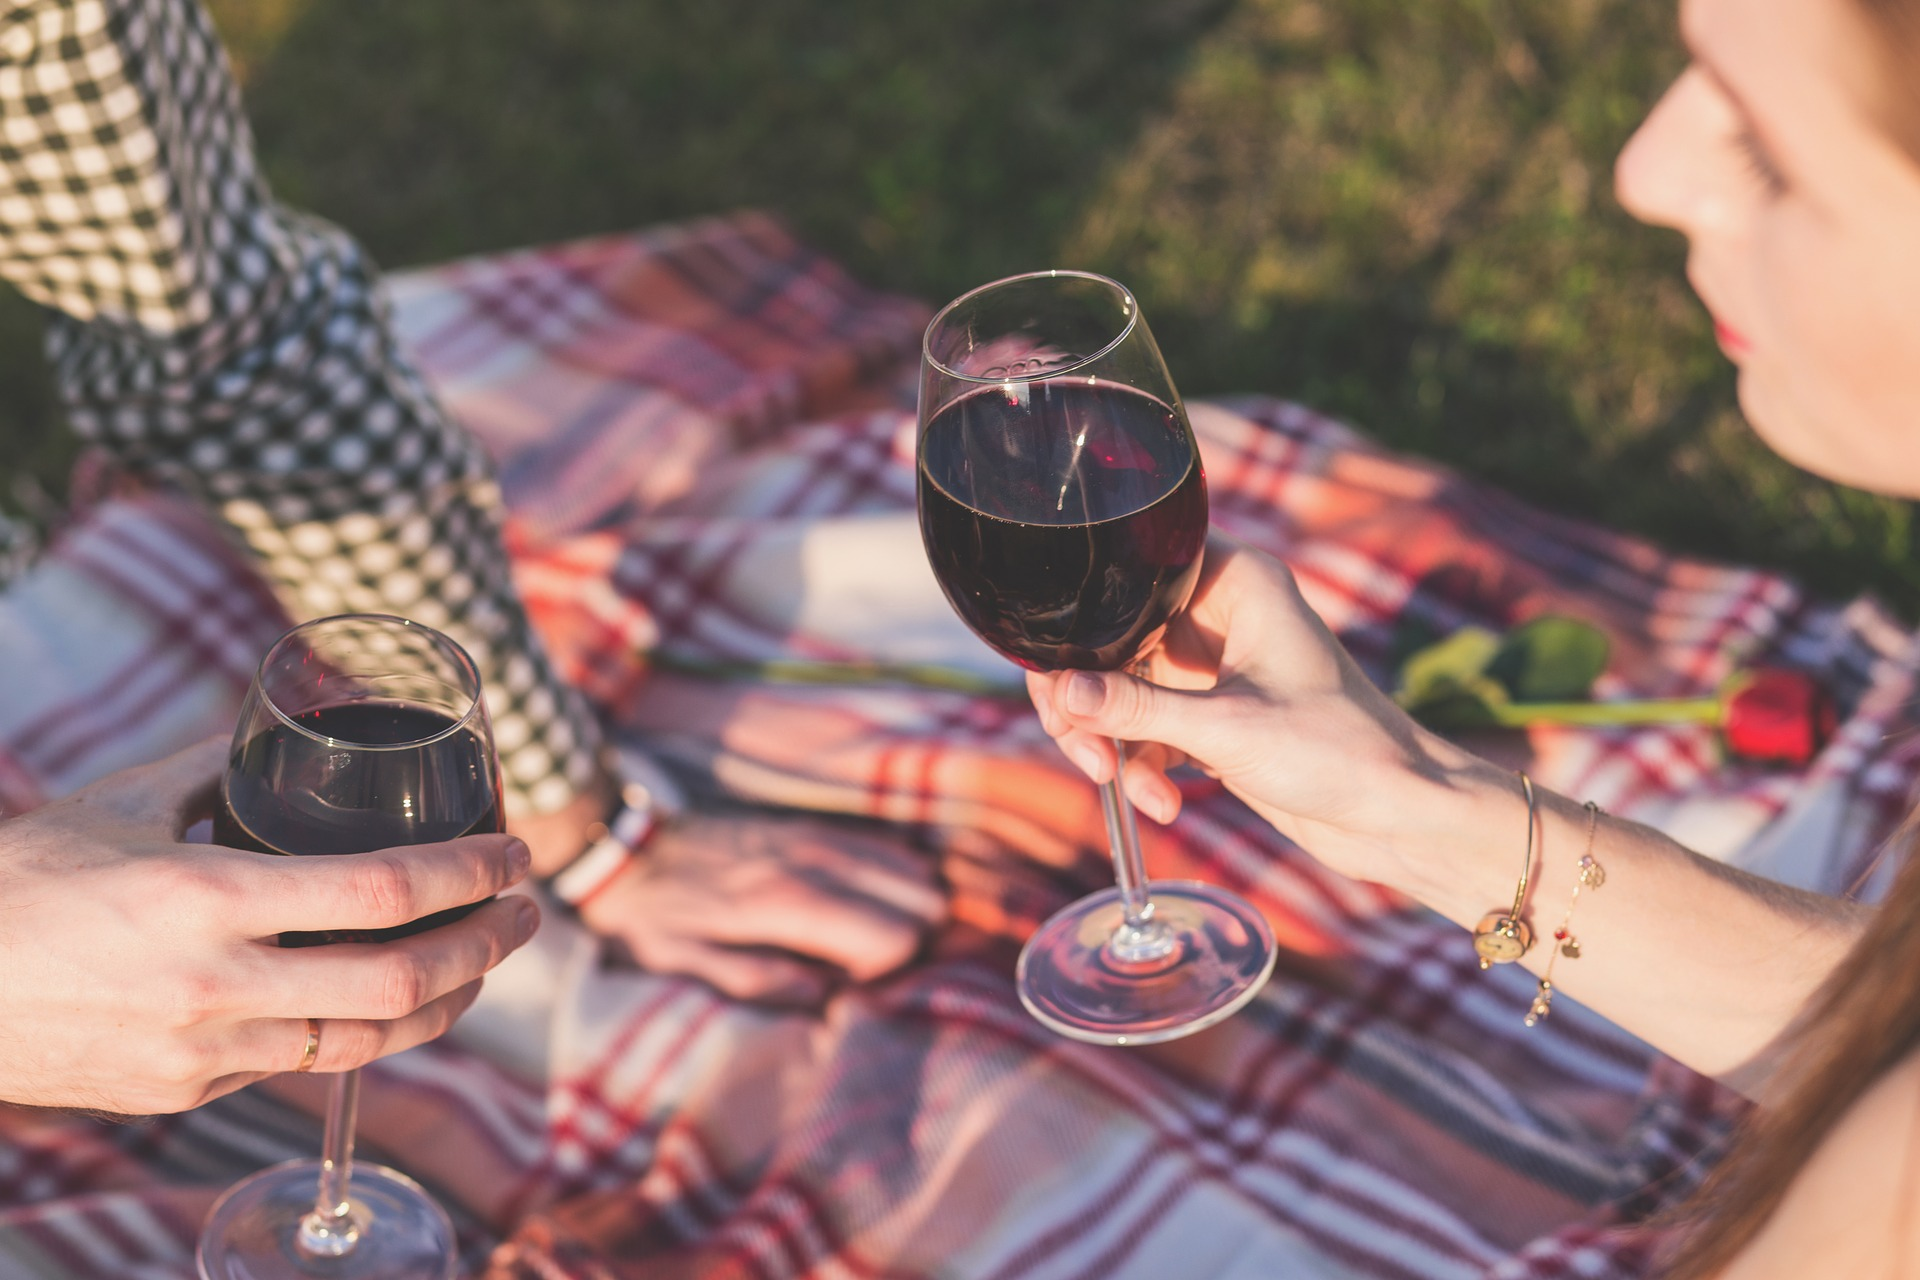 Couple holding a glass of wine on a picnic